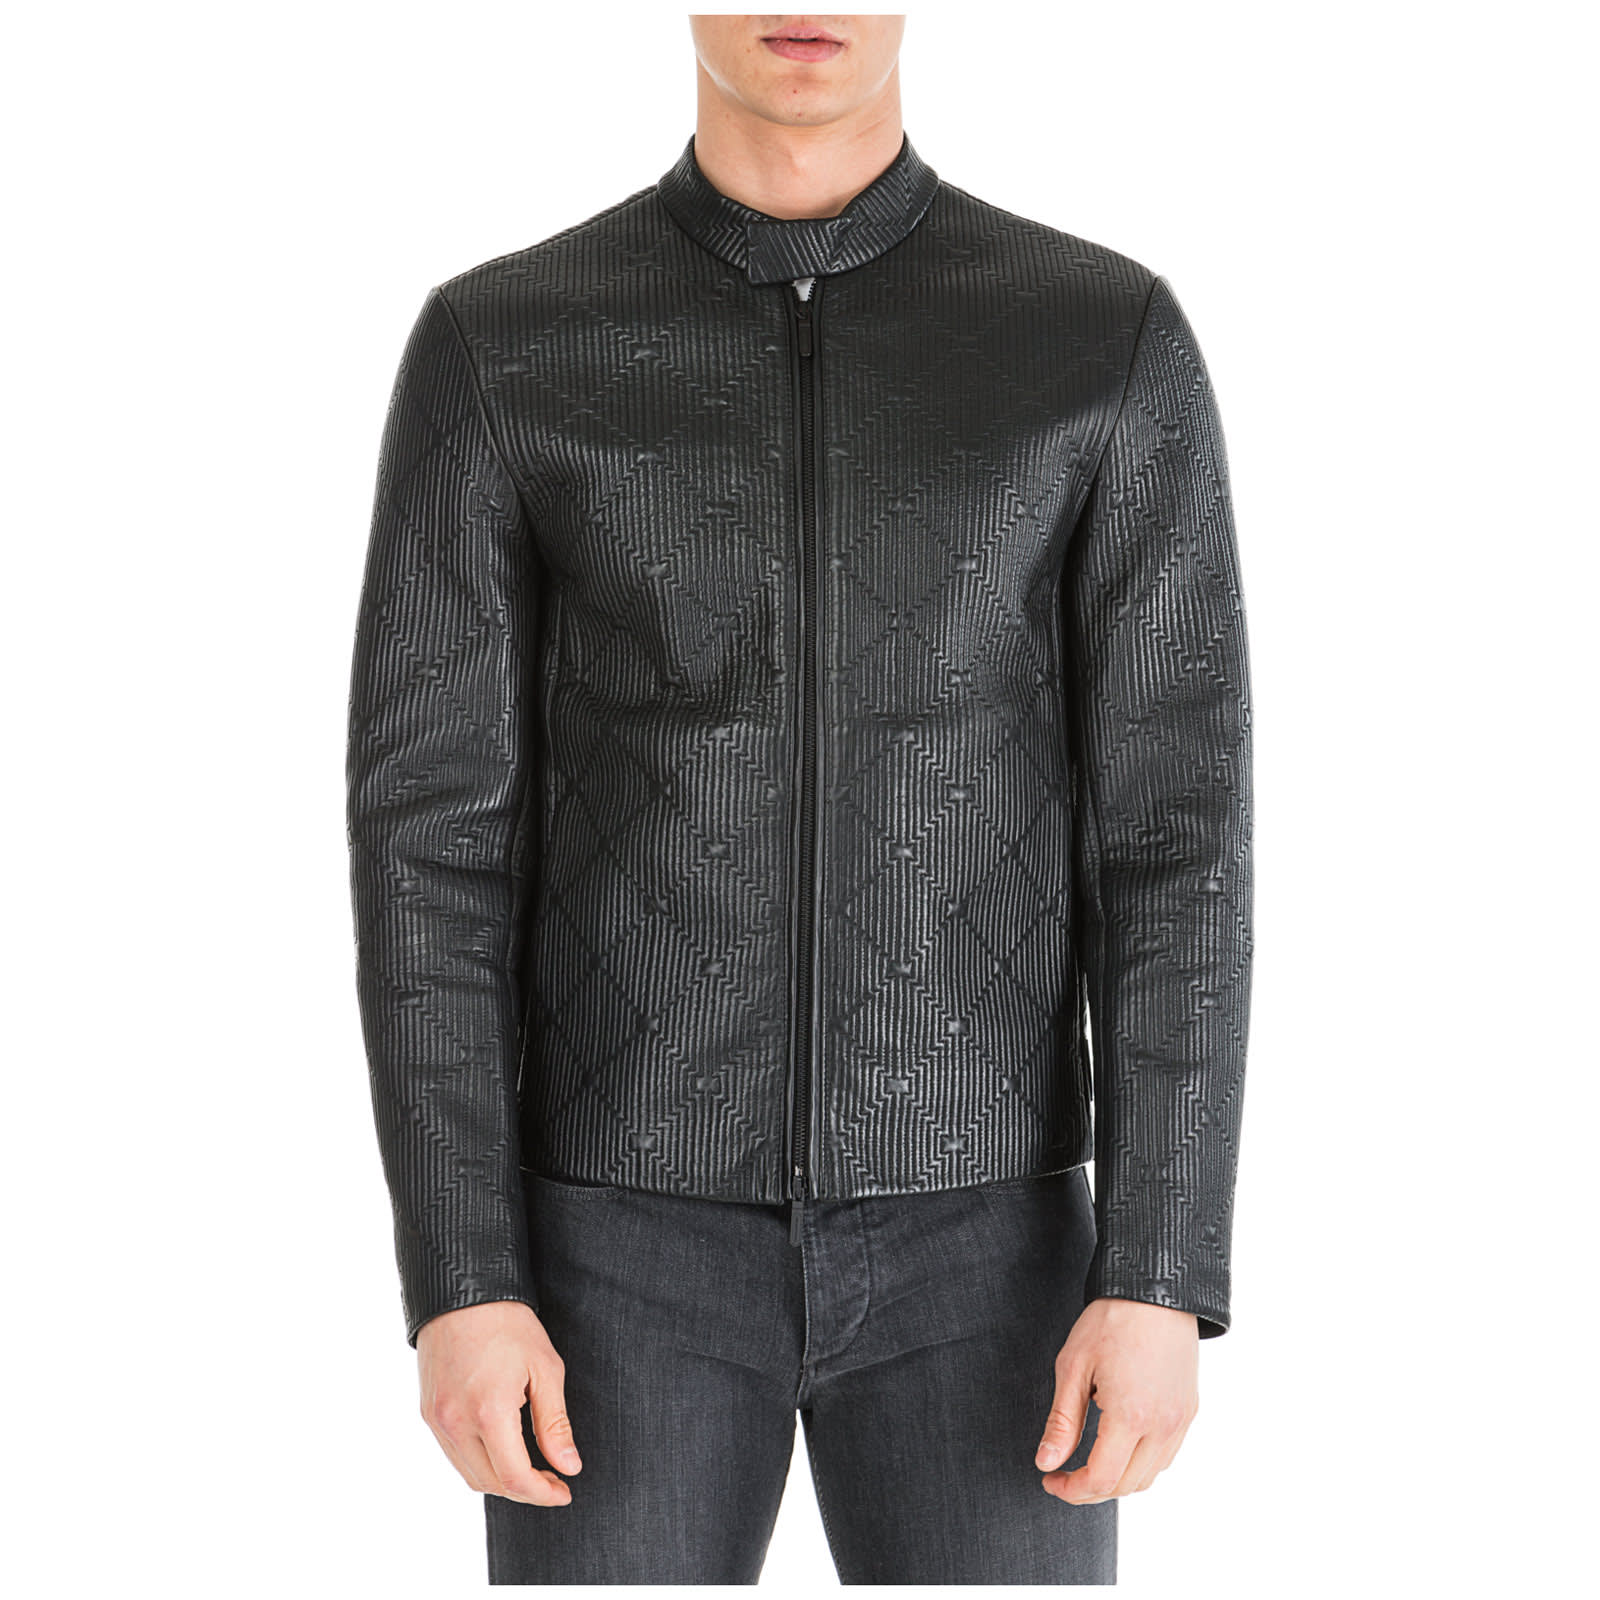 premium selection 613f1 123cb Best price on the market at italist | Emporio Armani Emporio Armani Herren  Lederjacke Jacke Blouson Leder Herrenjacke